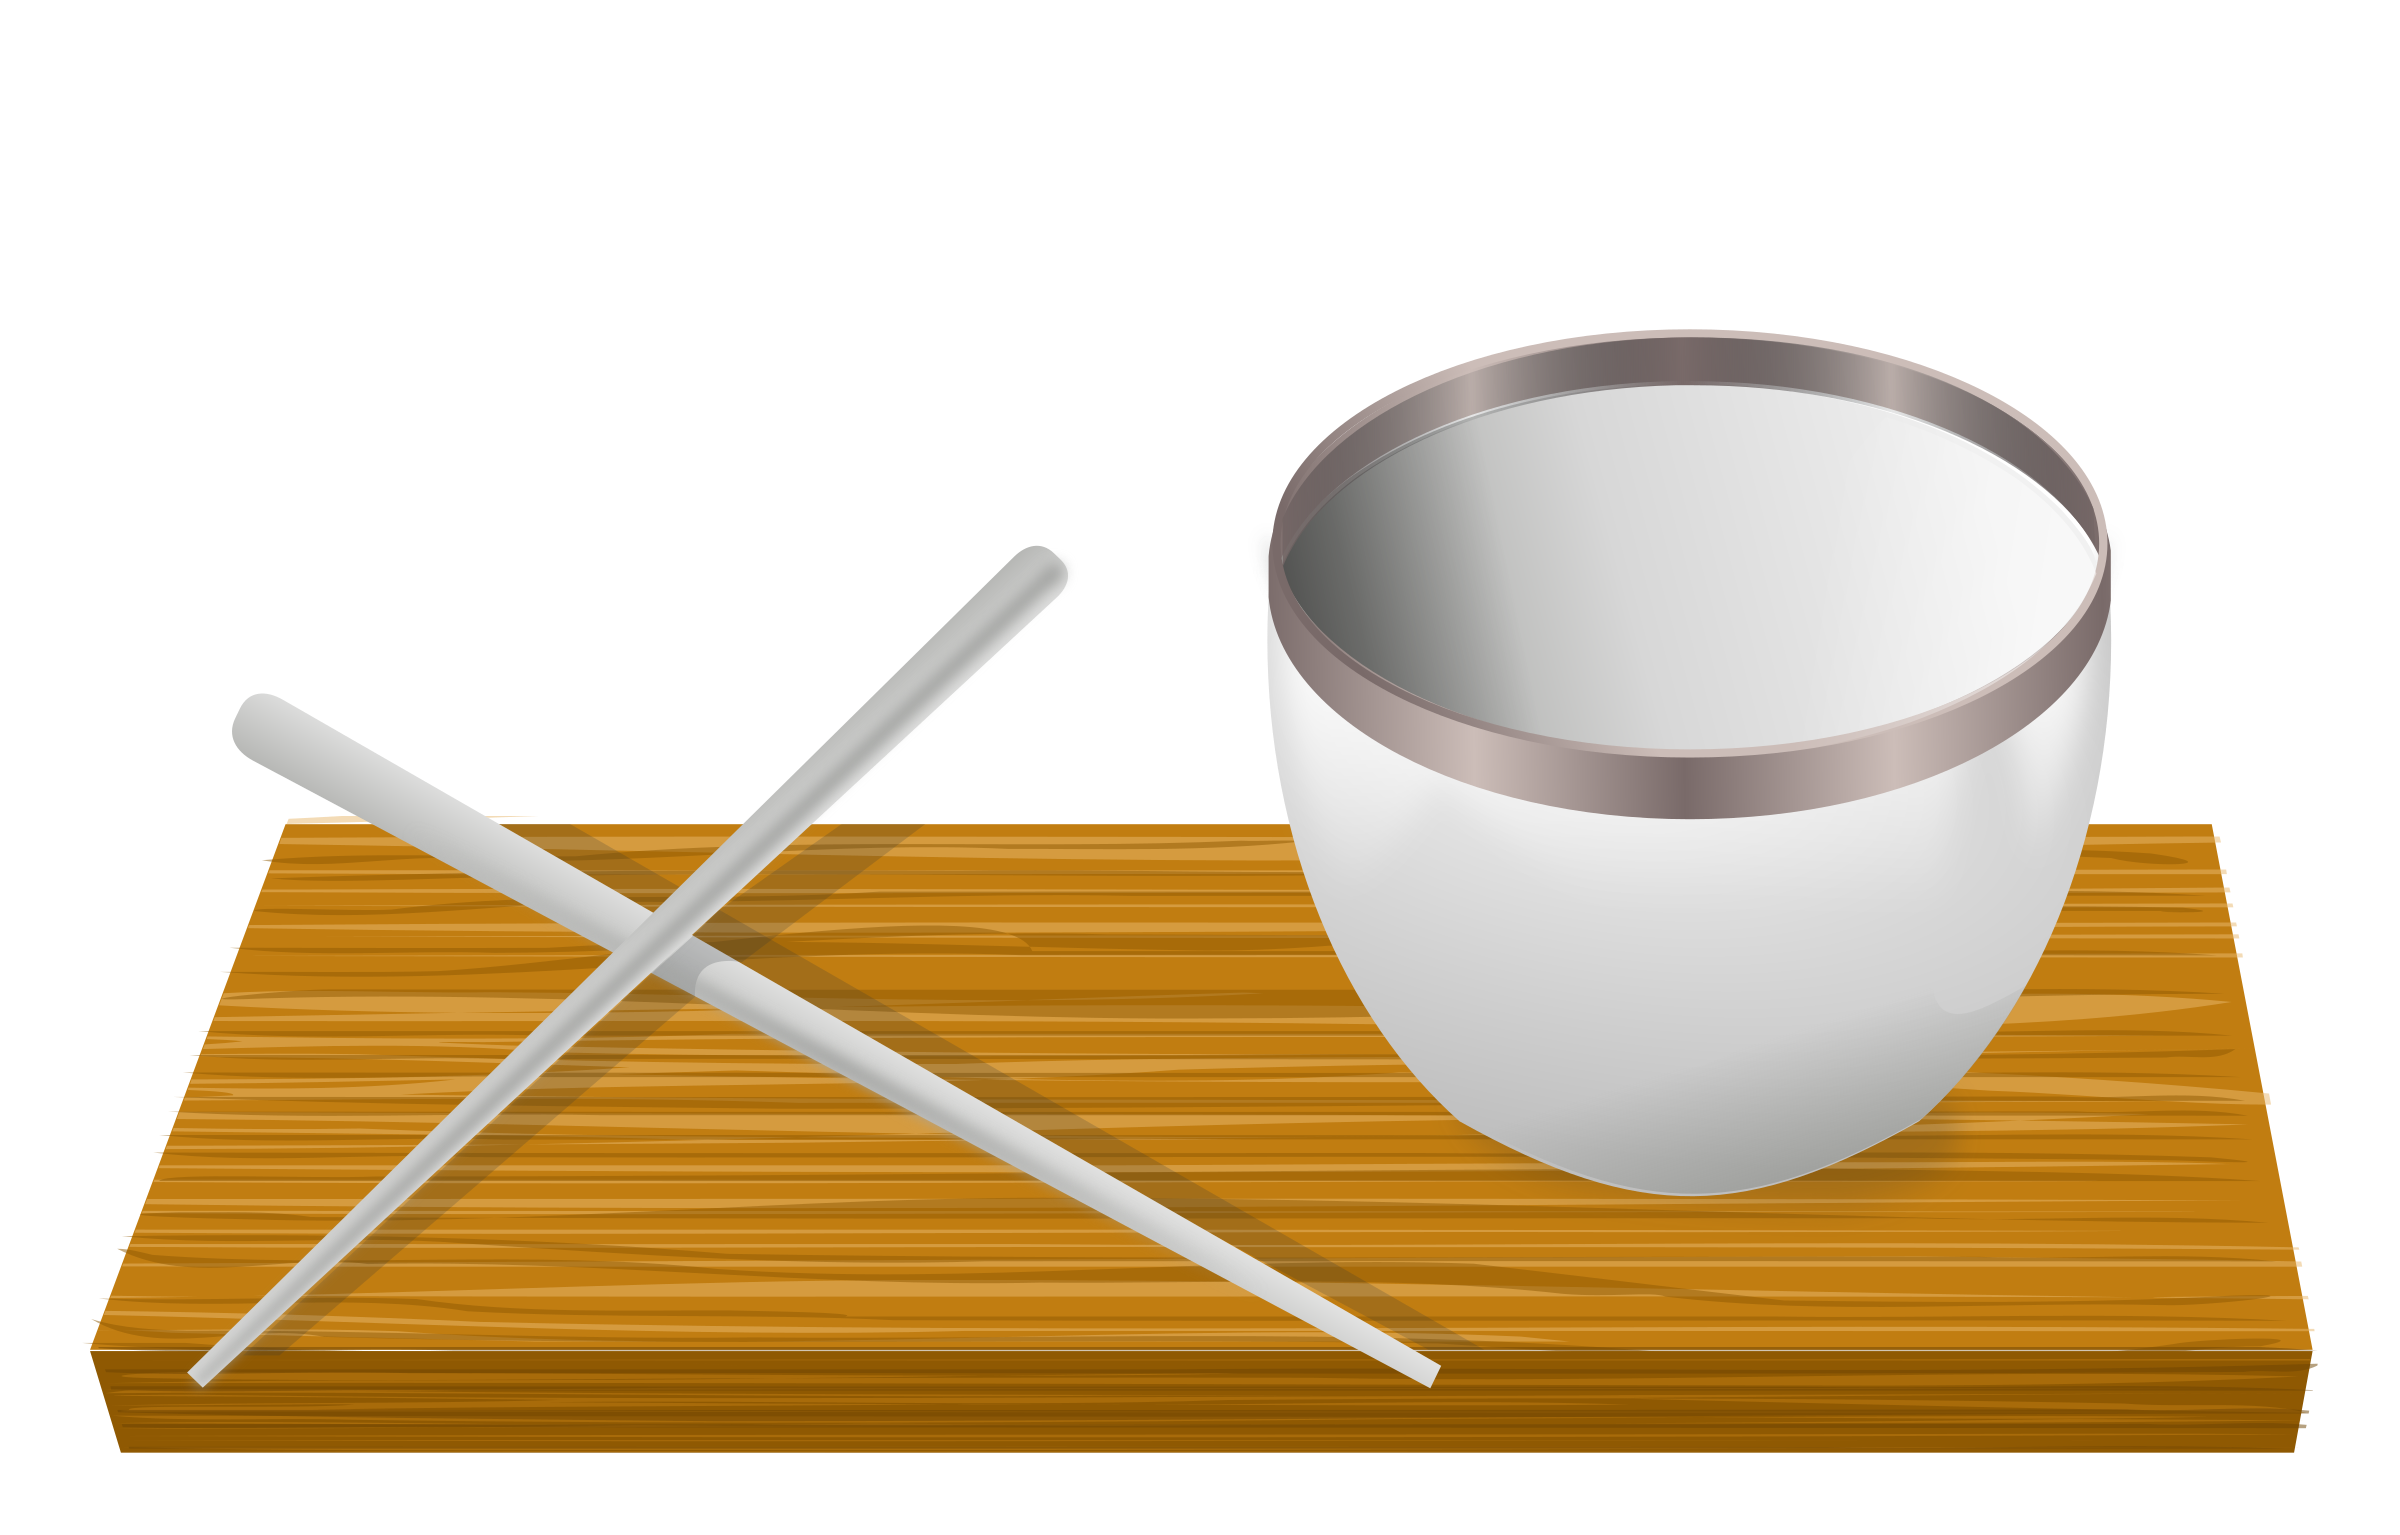 Rice chopsticks png. Bowl with icons free